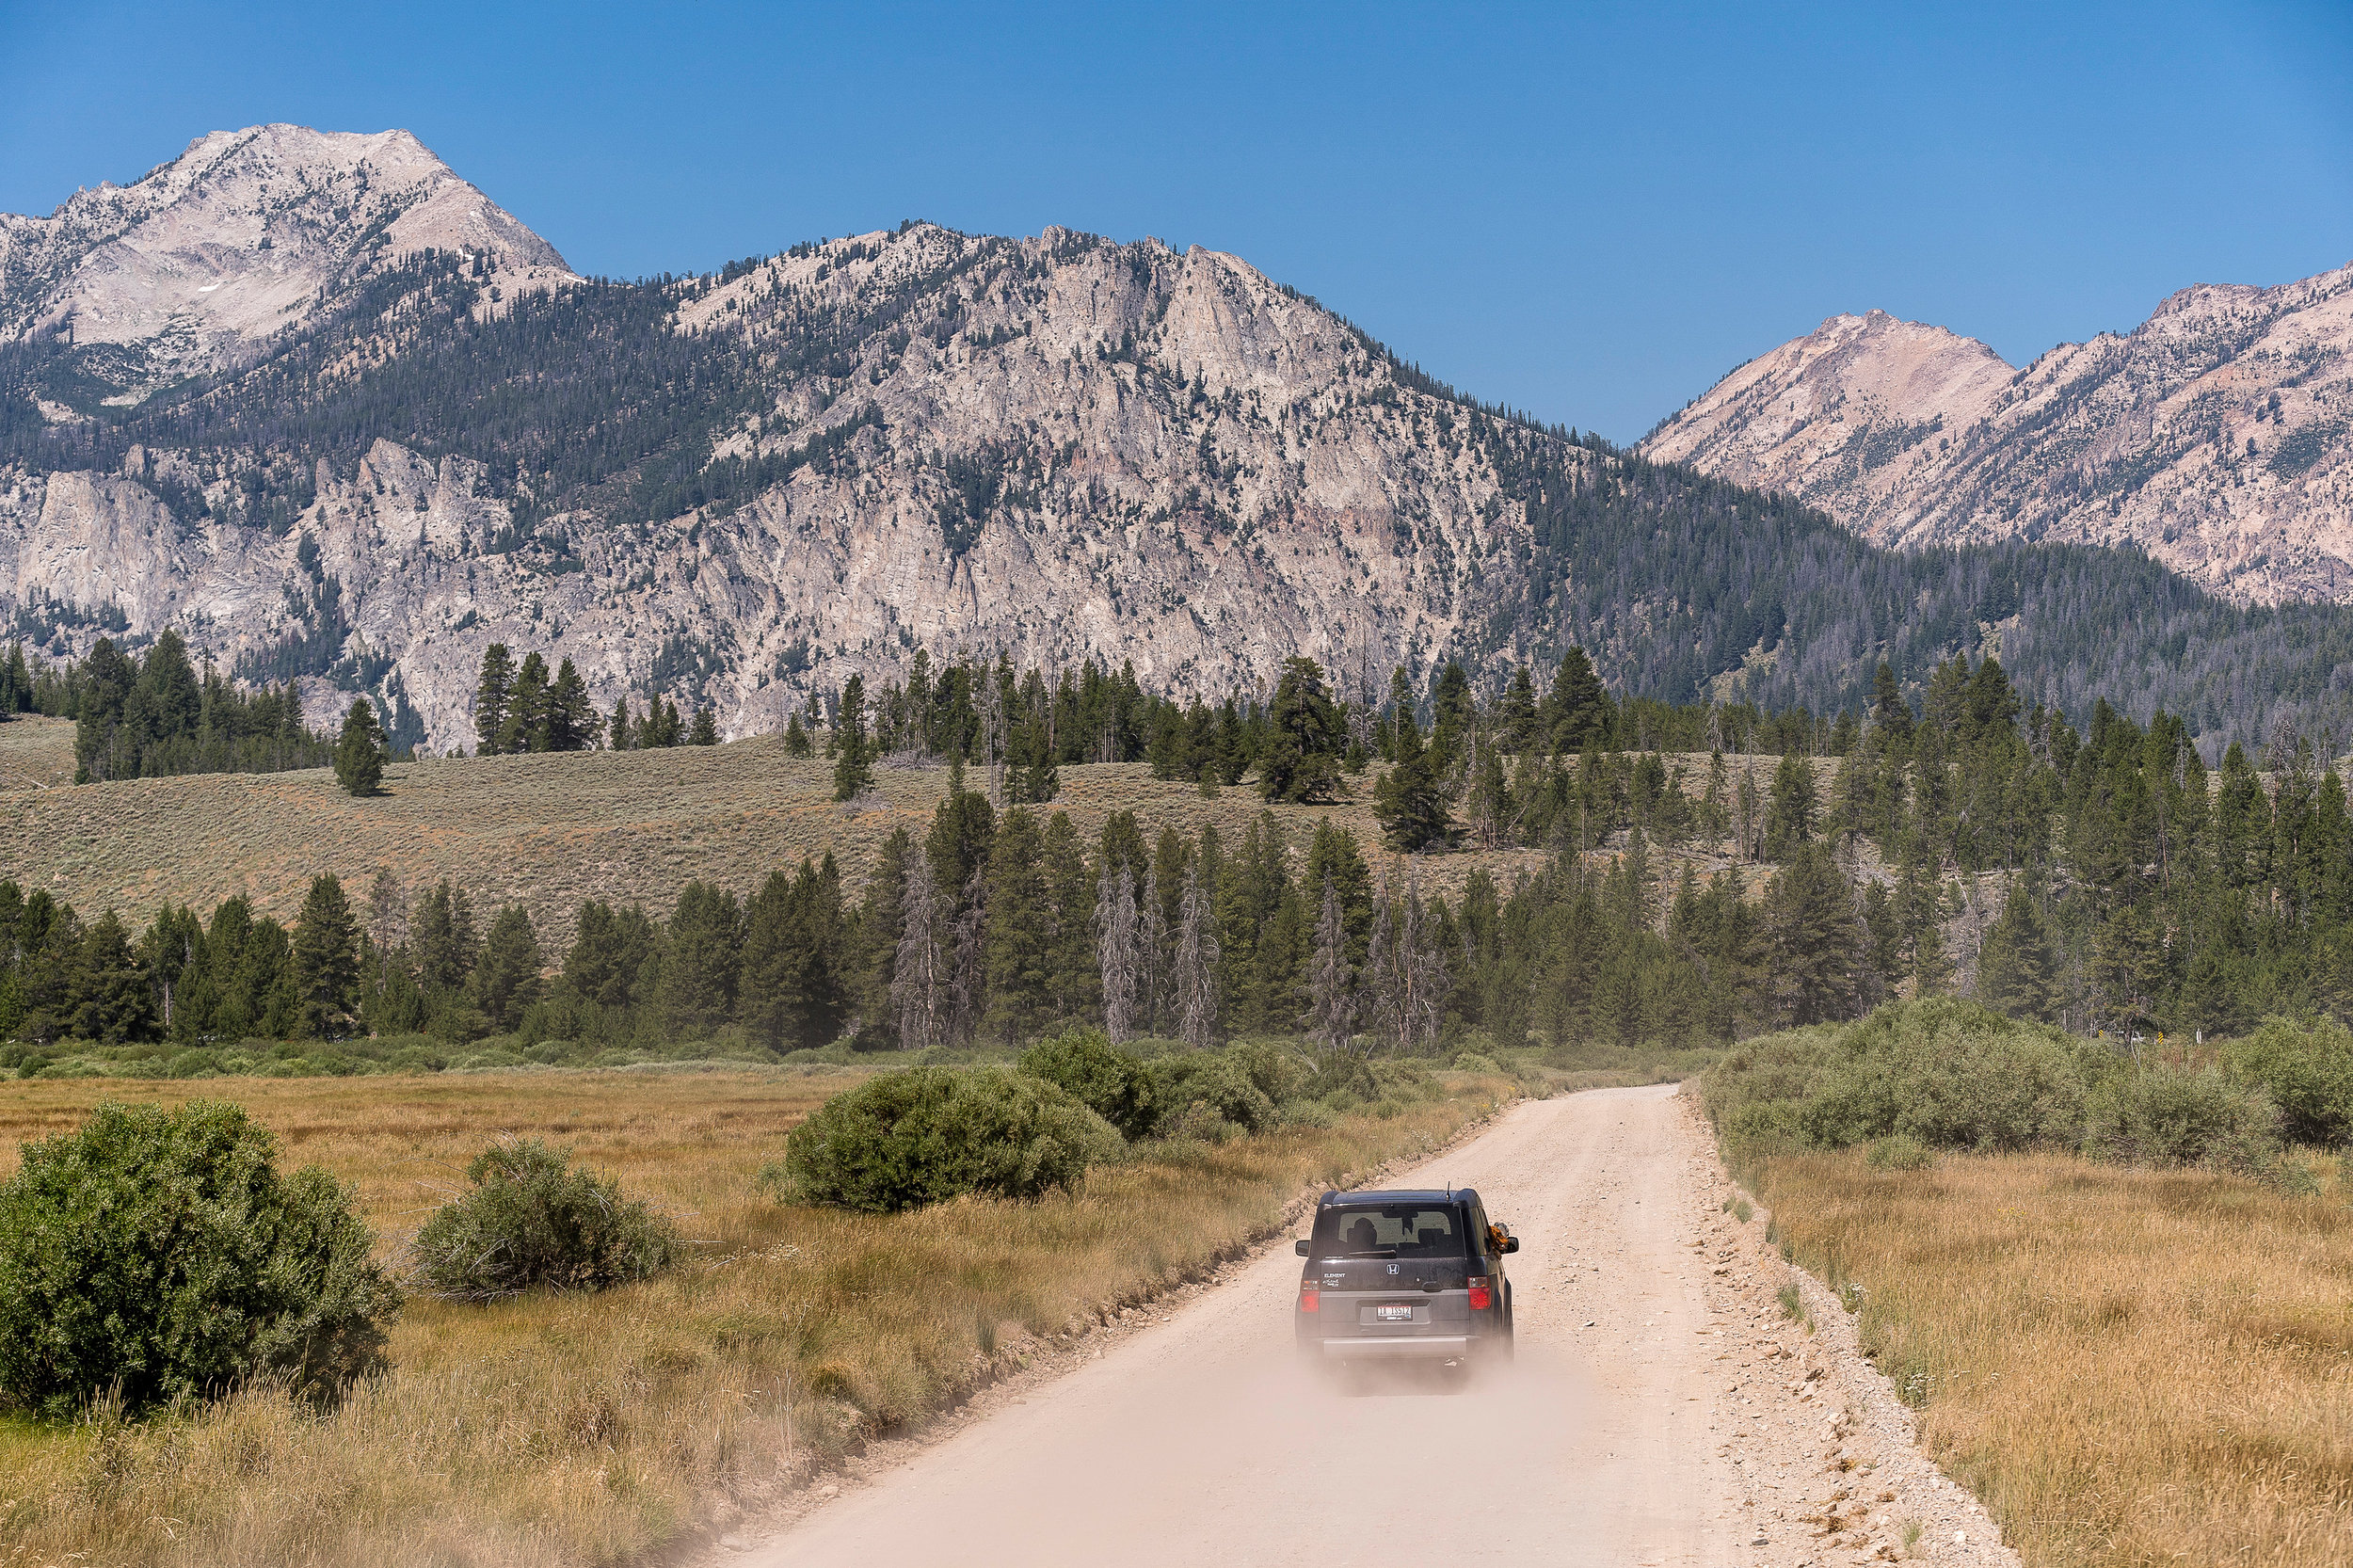 outdoor_lifestyle_Idaho_Ketchum_hiking_Stephen_matera_7-20-18_a9_DSC2746.jpg